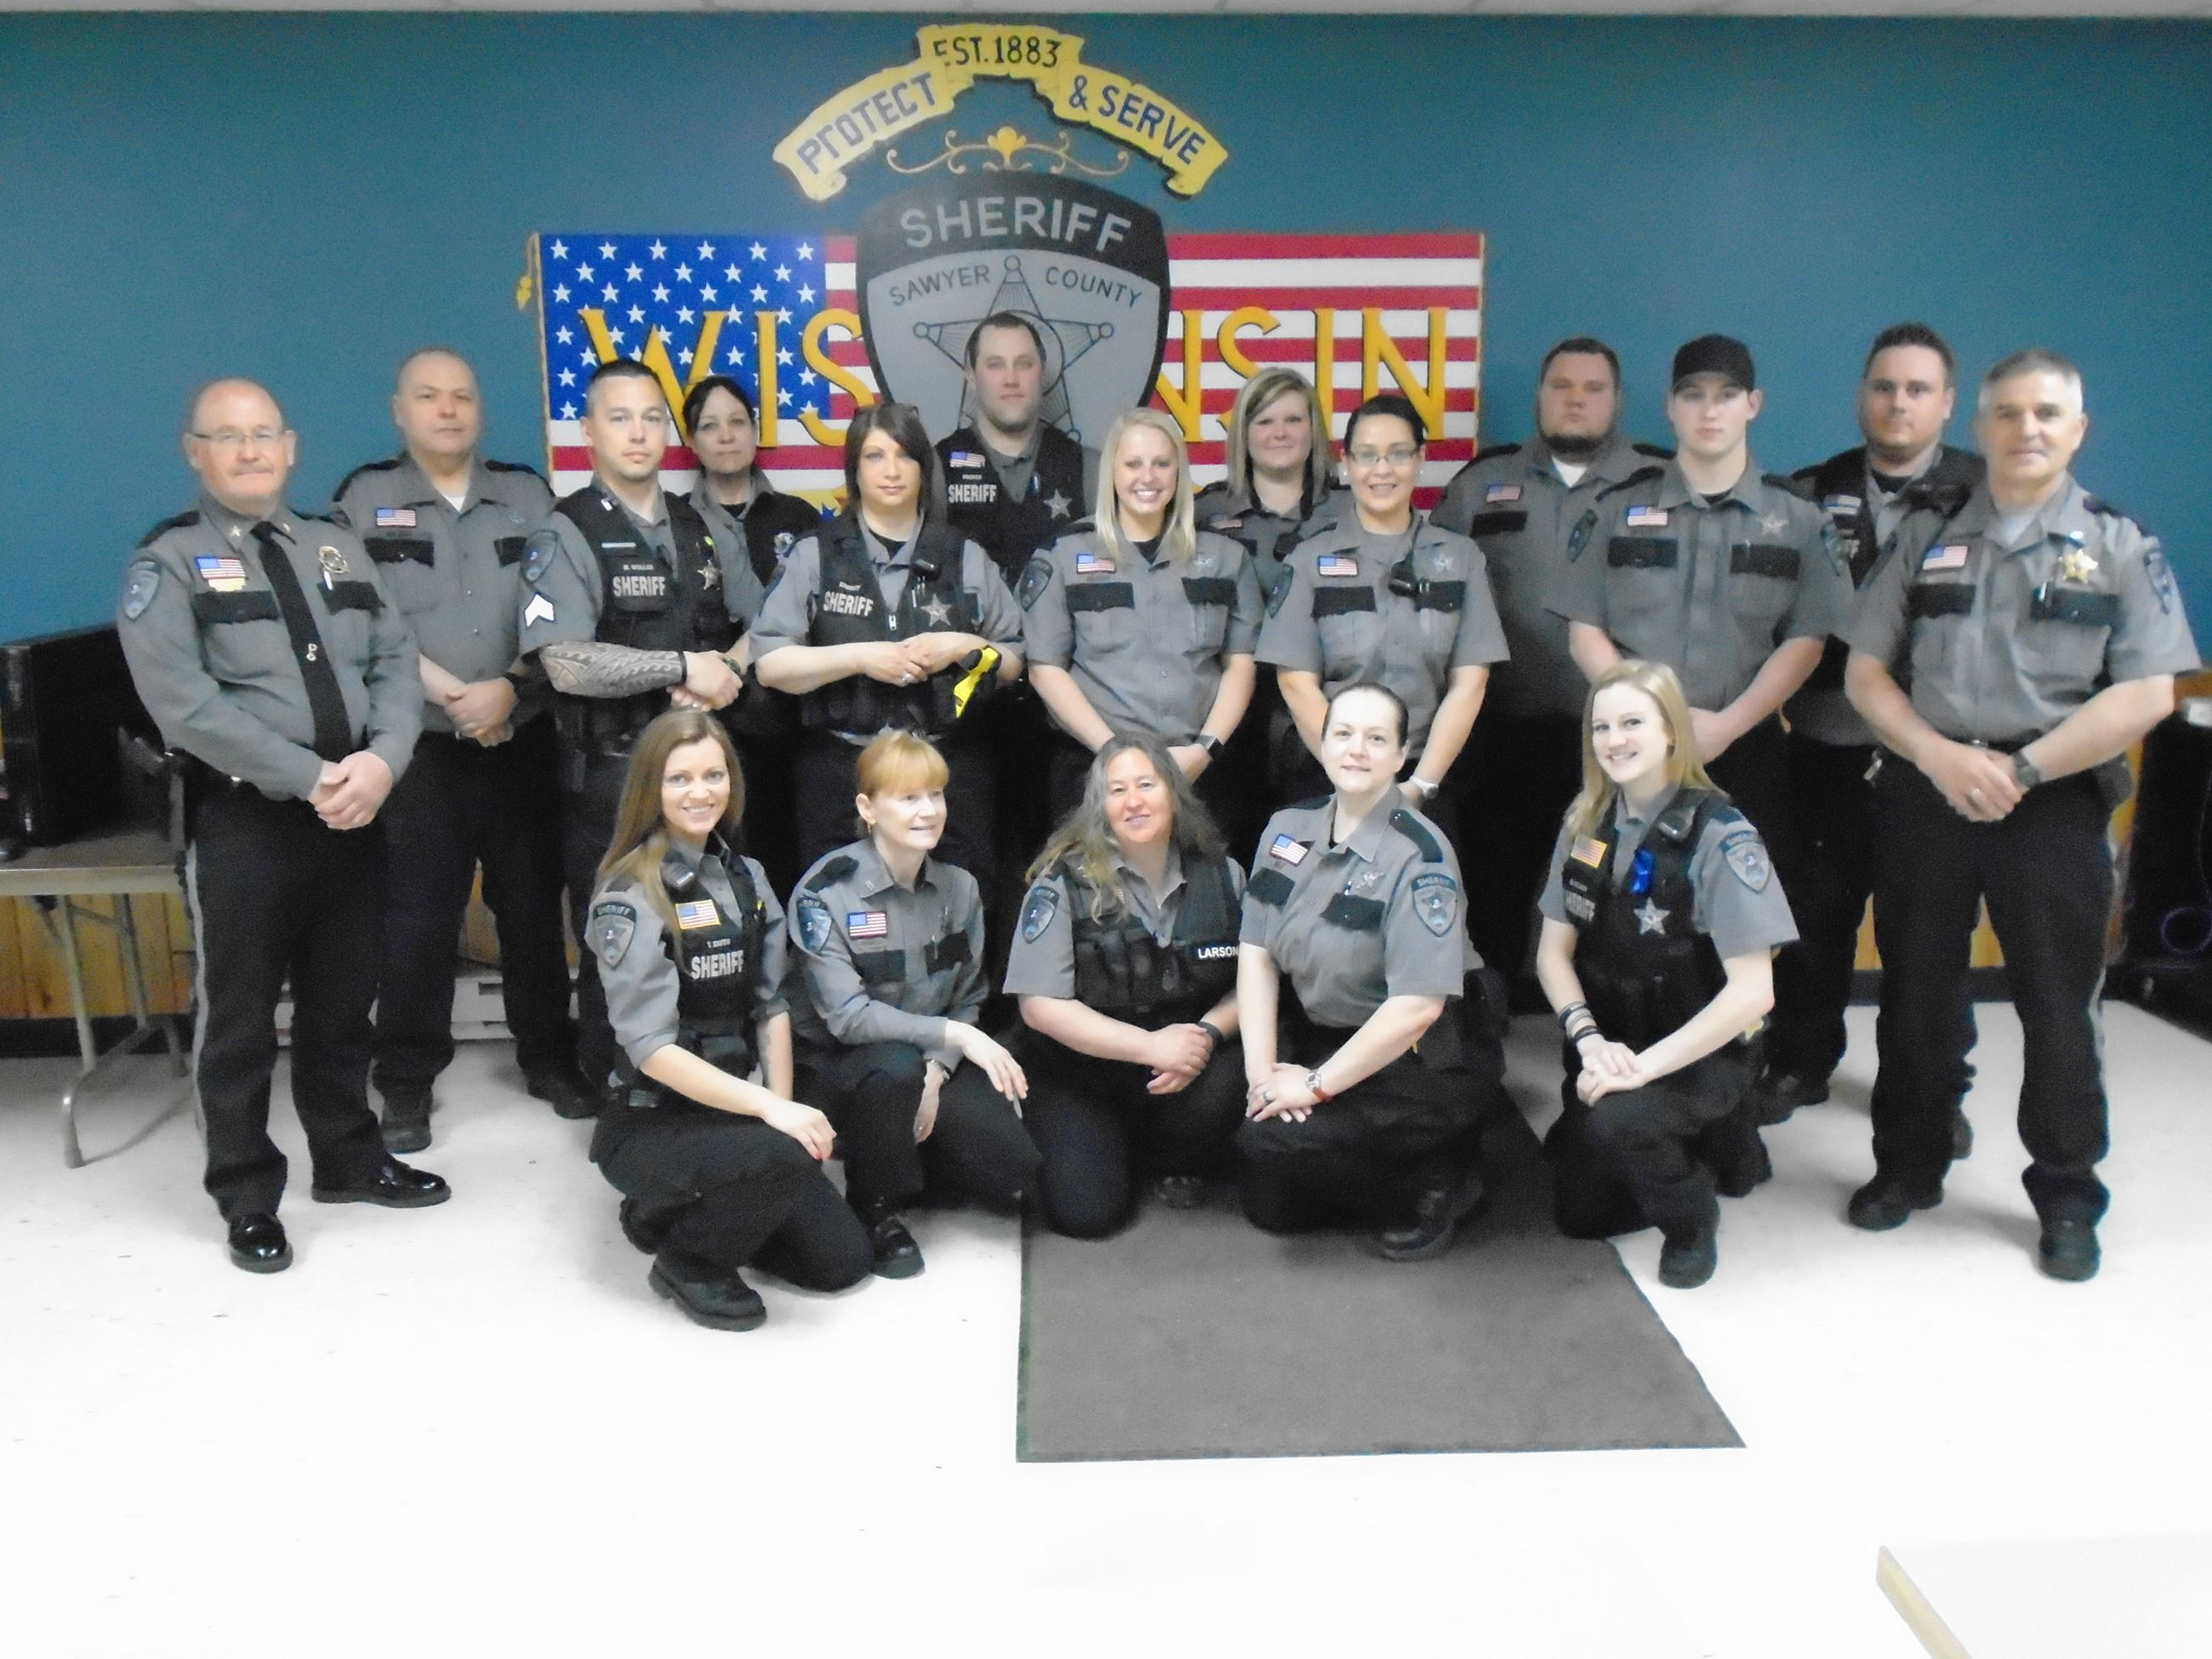 Sawyer County Correctional Officers